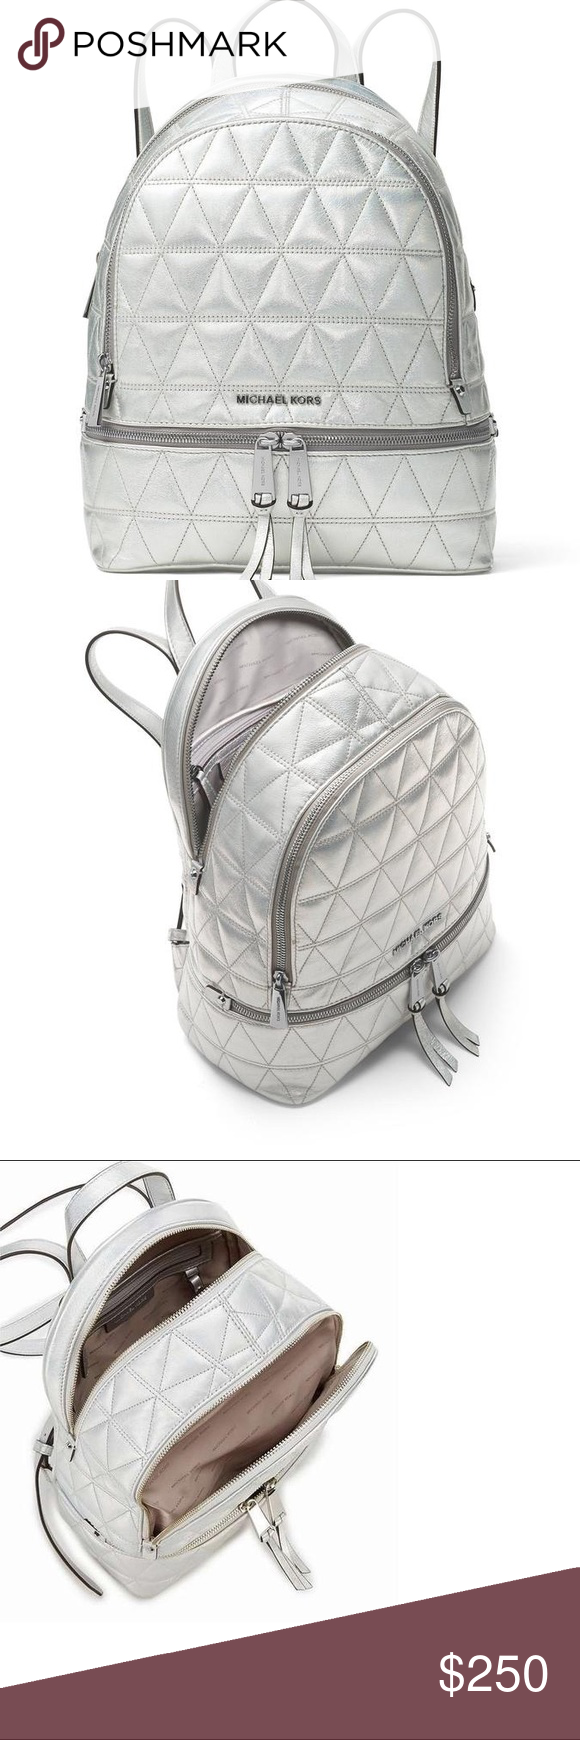 2076172b5e9f Michael Kors Rhea Medium Metallic Leather Backpack Silver iridescent metallic  quilted leather. New with tags and dust bag. Approximately 12.5